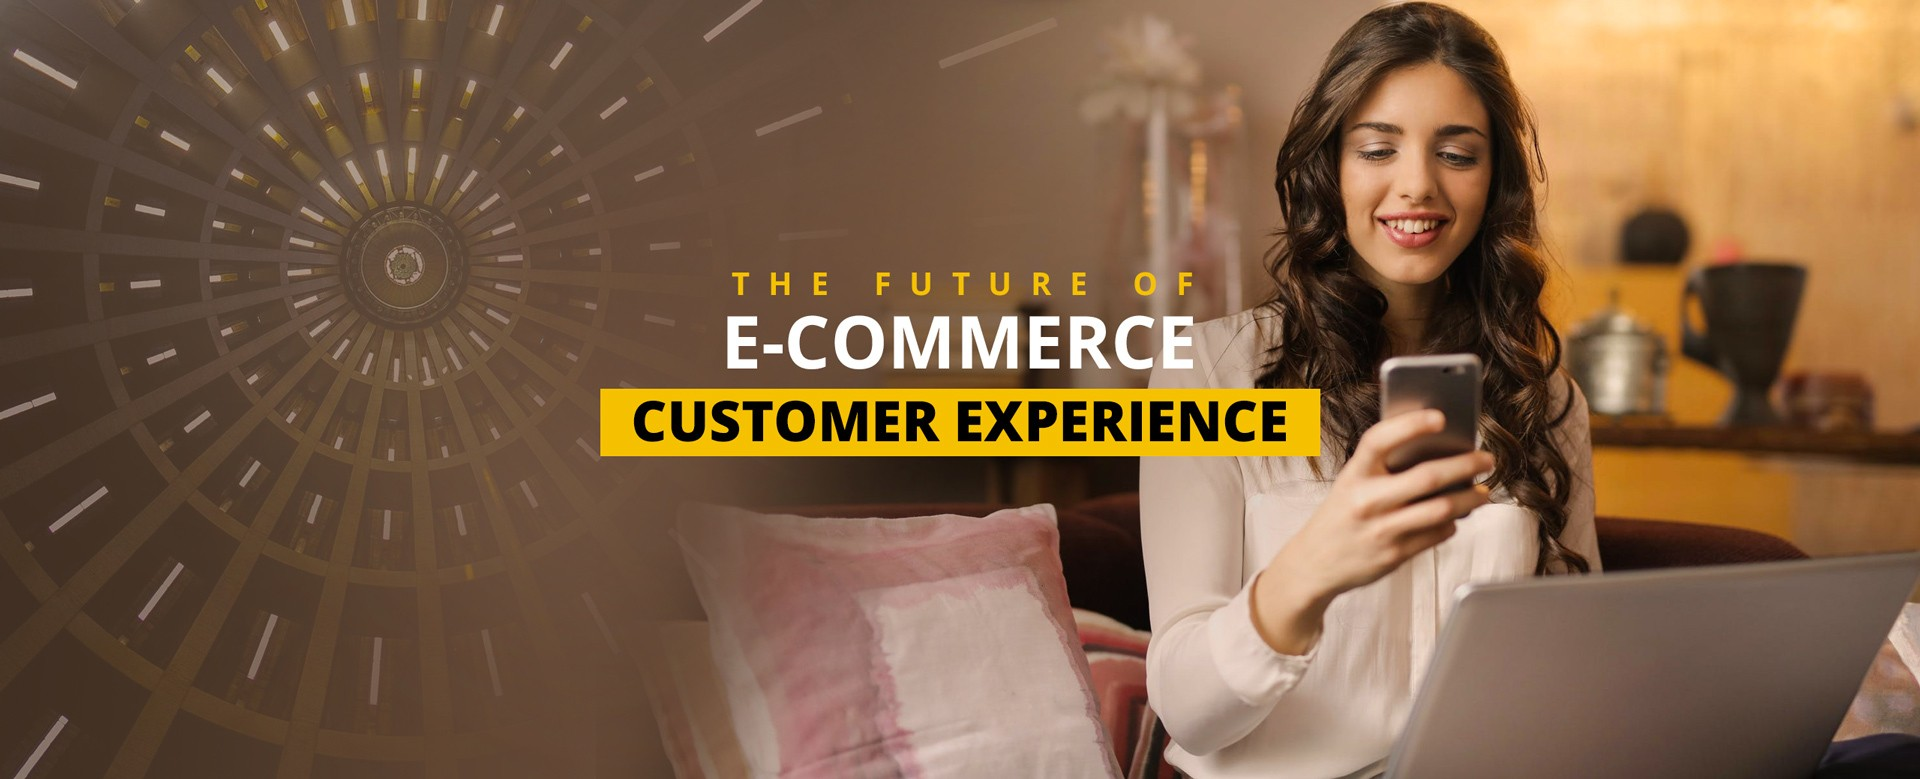 The Future of eCommerce Customer Experience